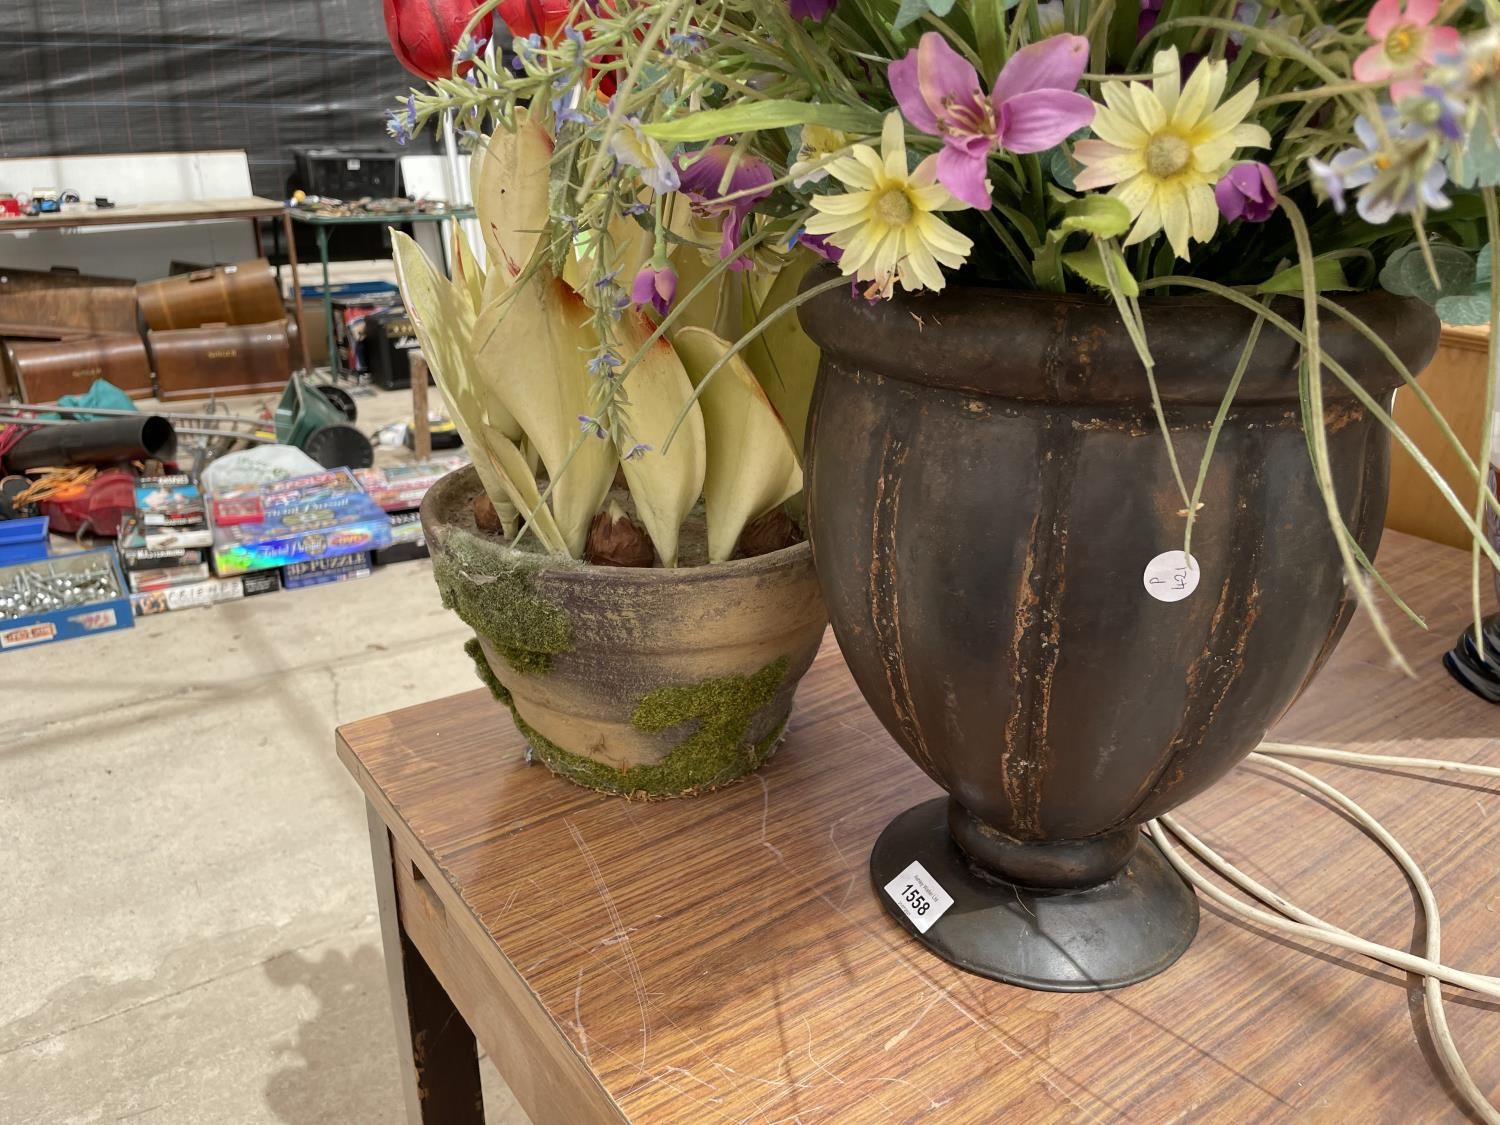 A VASE AND A PLANT POT CONTAINING ARTIFICIAL FLOWERS - Image 5 of 6